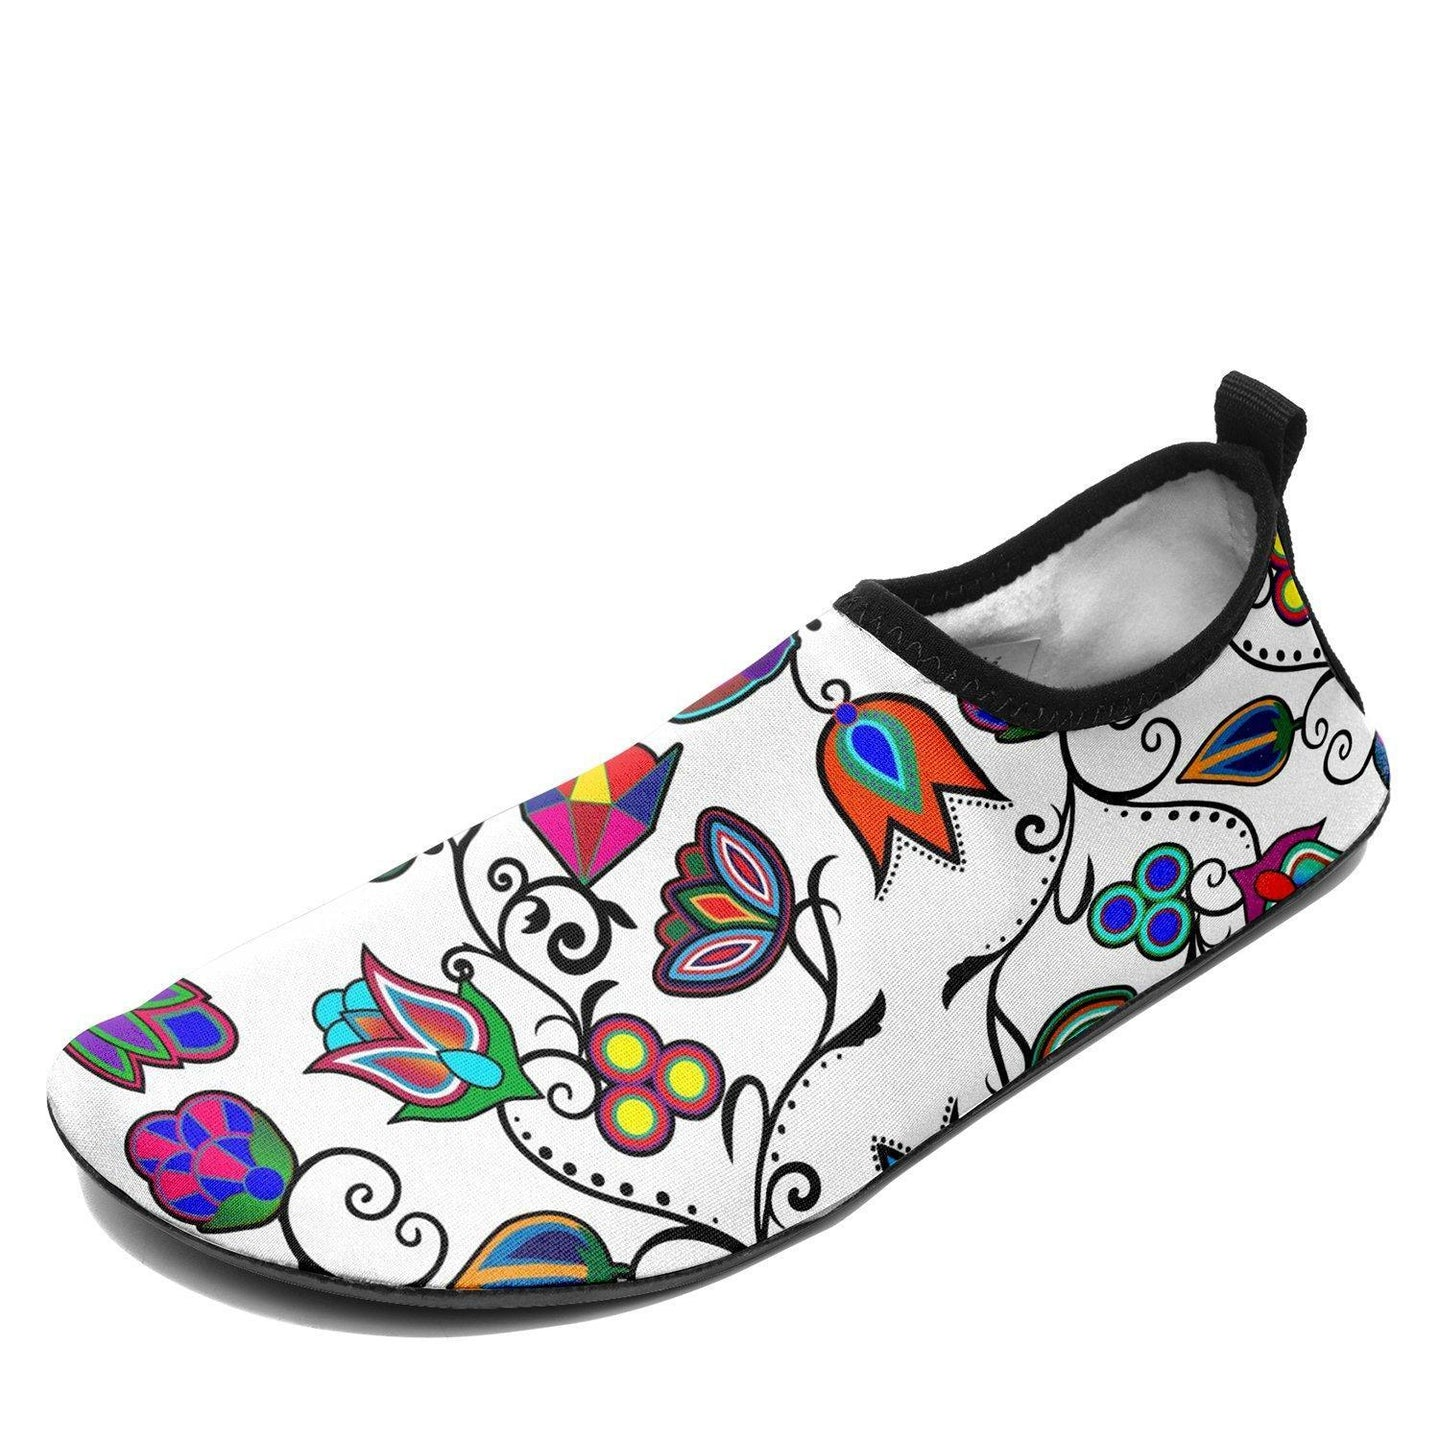 Indigenous Paisley White Sockamoccs Kid's Slip On Shoes 49 Dzine